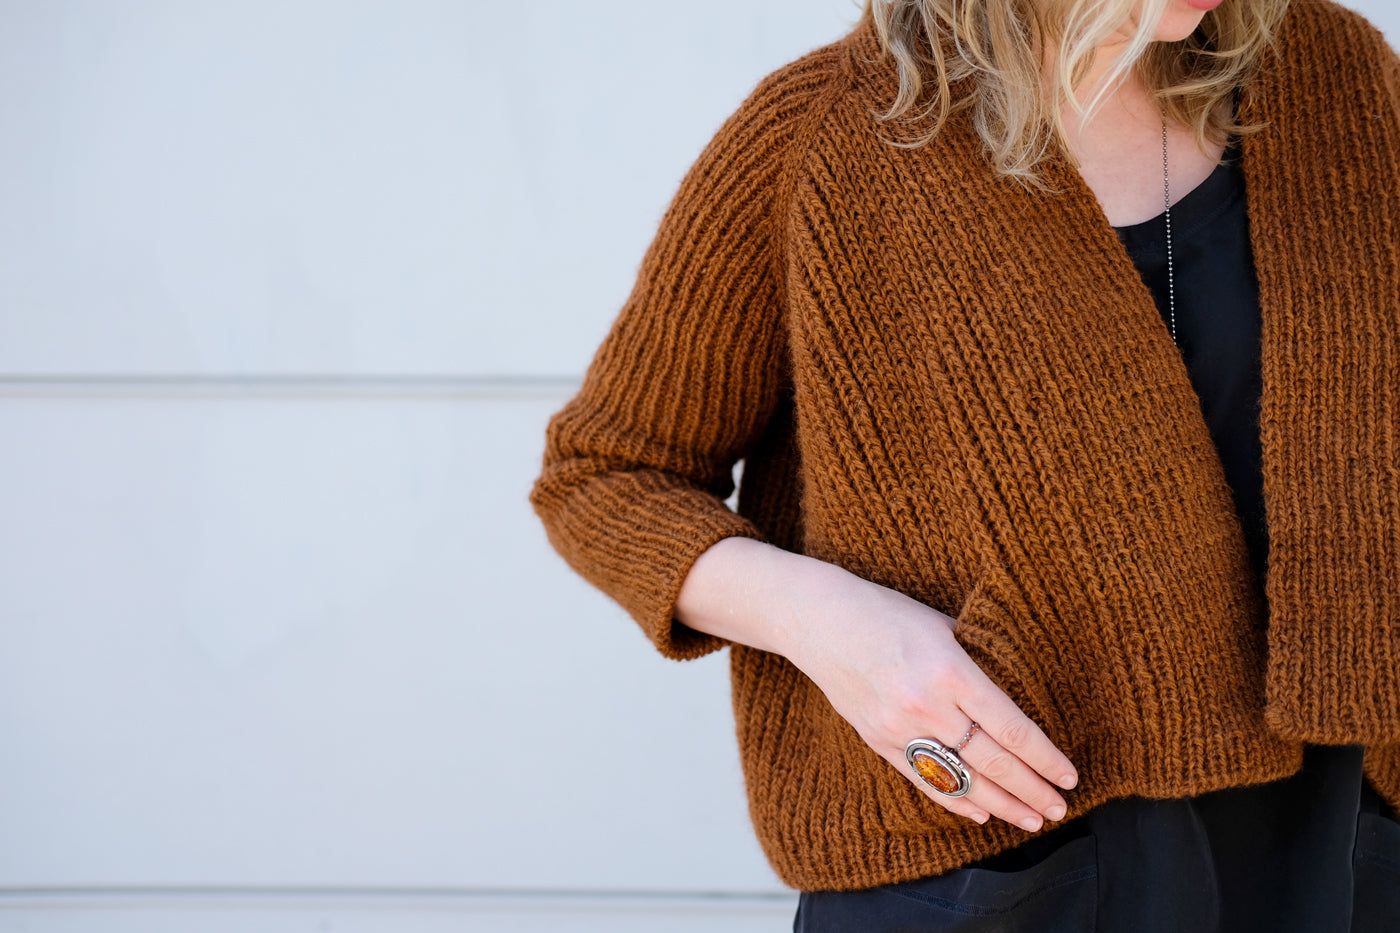 Tiny pocket detail for Amber's cropped sweater